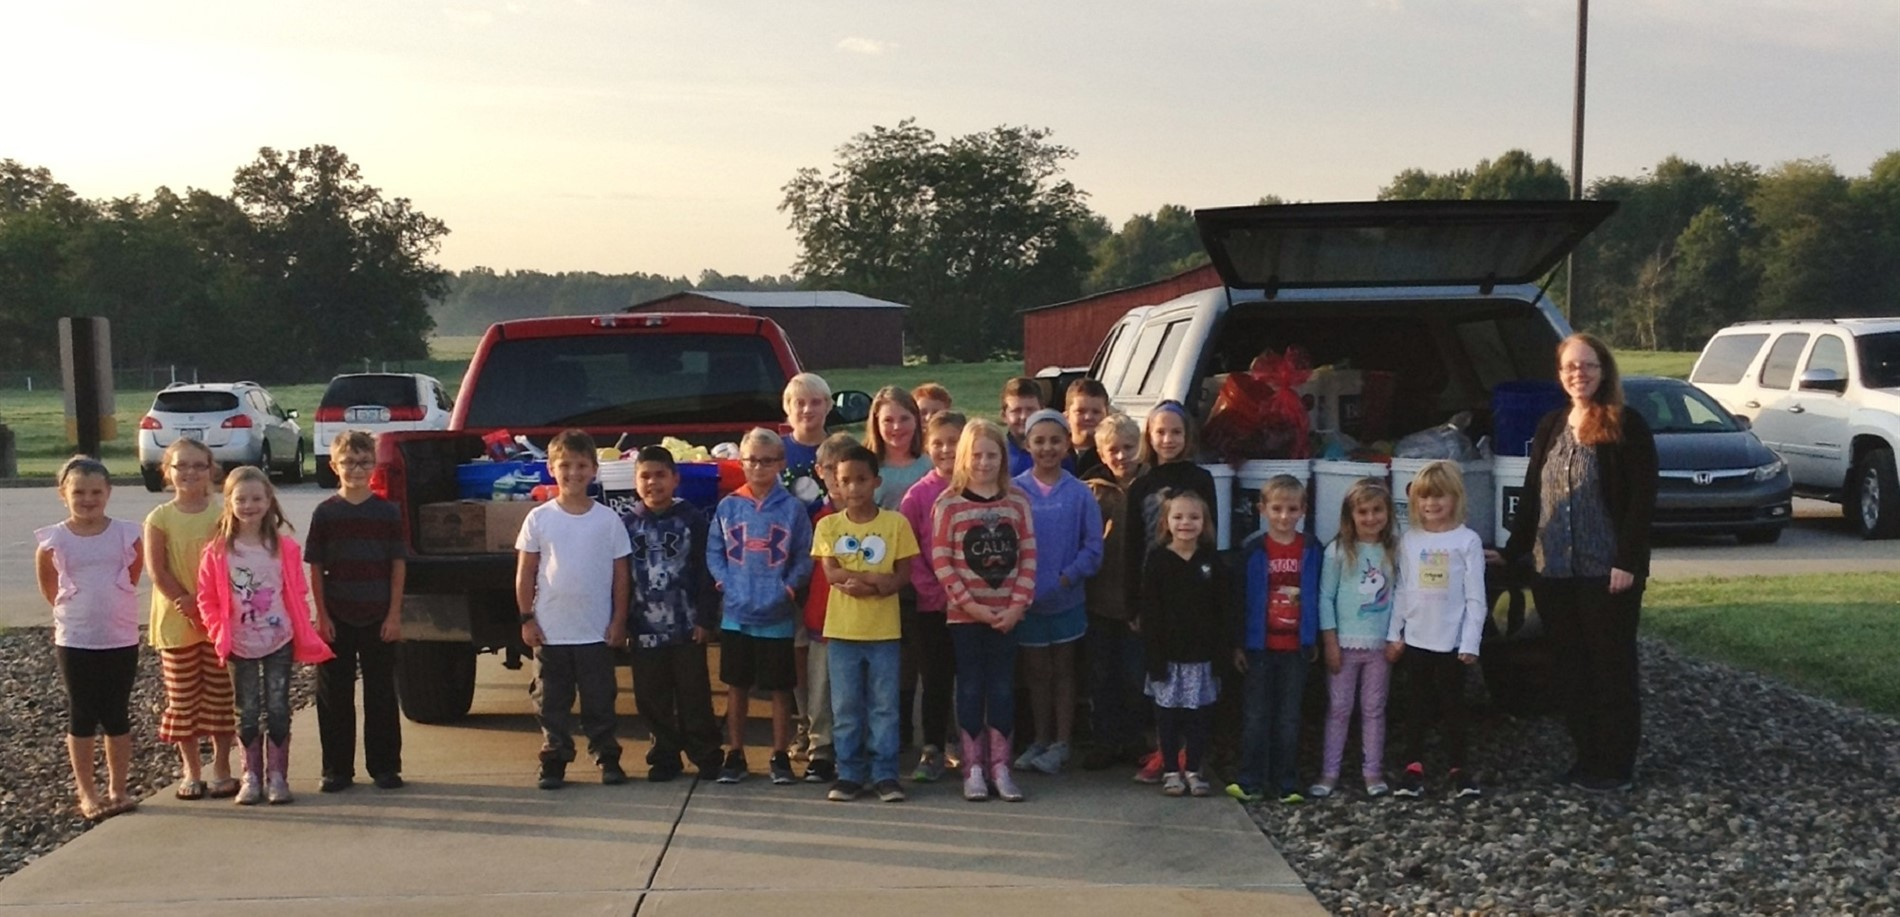 Creeskside Elementary School students filled two truck beds with supplies for Hurricane Harvey relief.